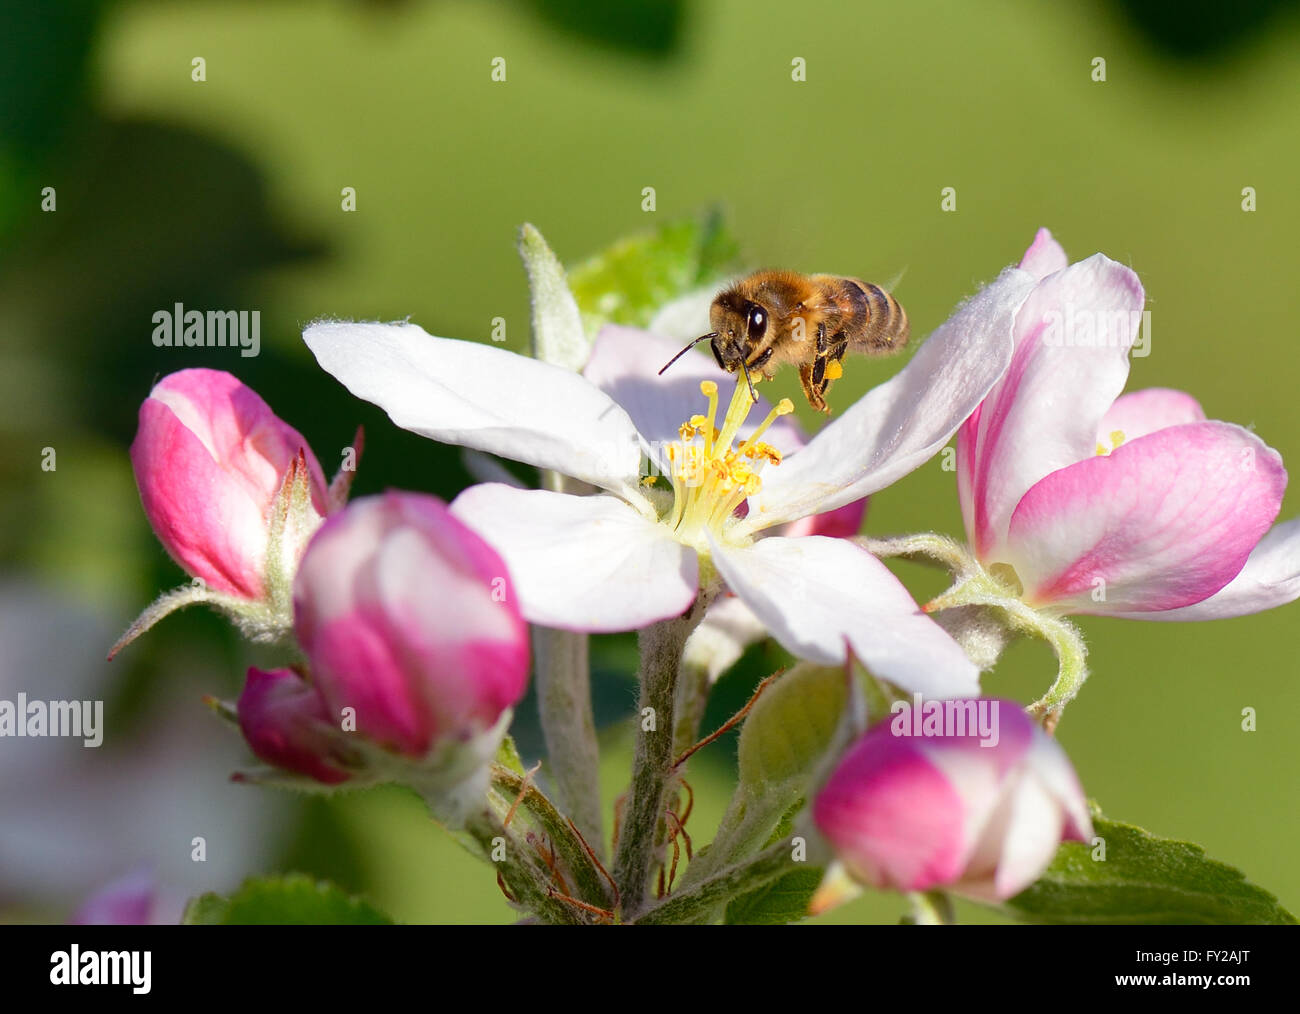 Busy bee hovers over an apple blossom - Stock Image